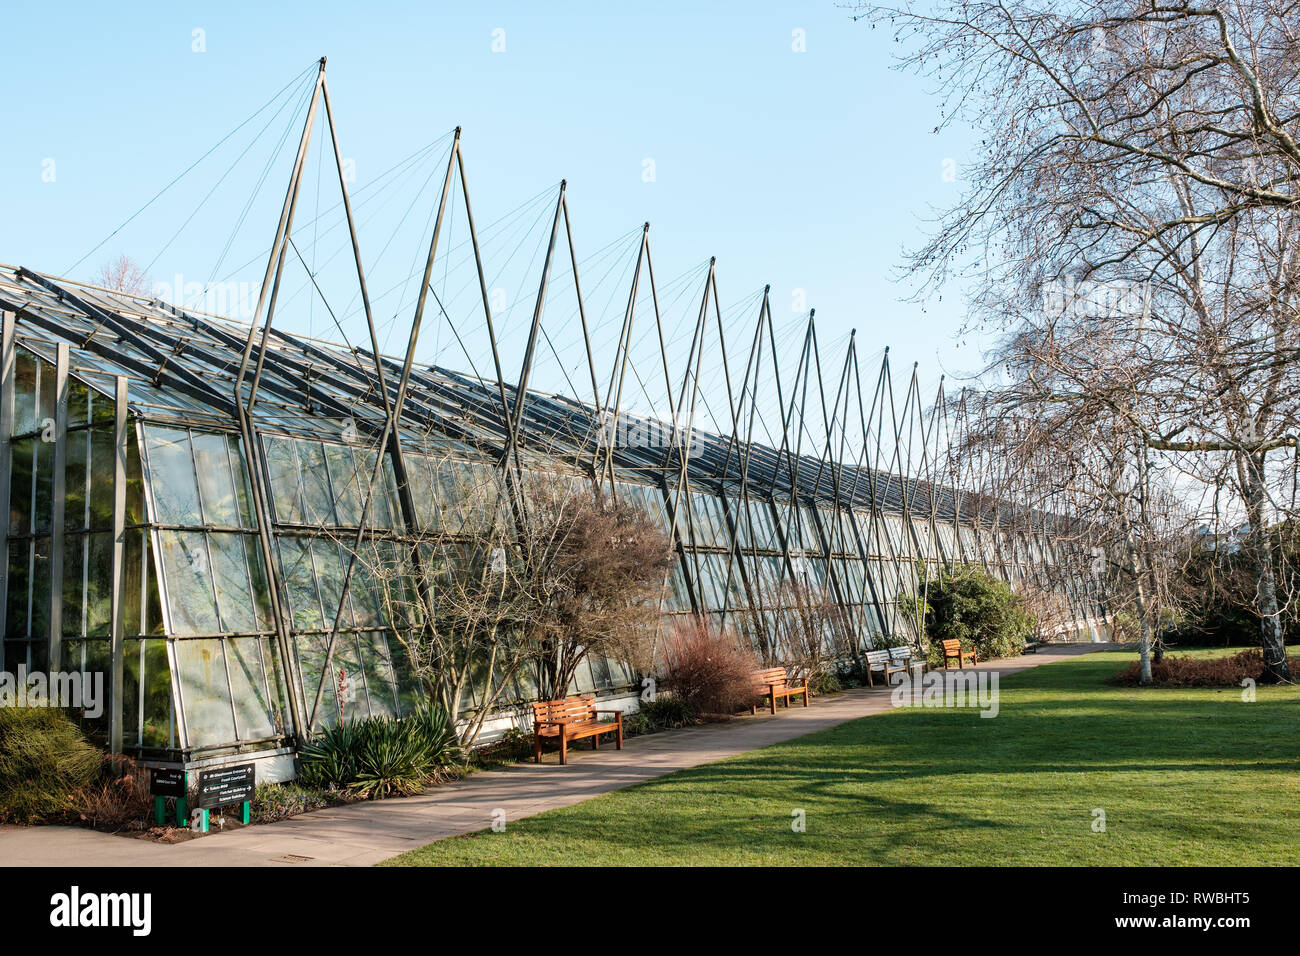 Exterior of the glasshouse at the Royal Botanic Garden on a sunny day, Edinburgh, Scotland Stock Photo